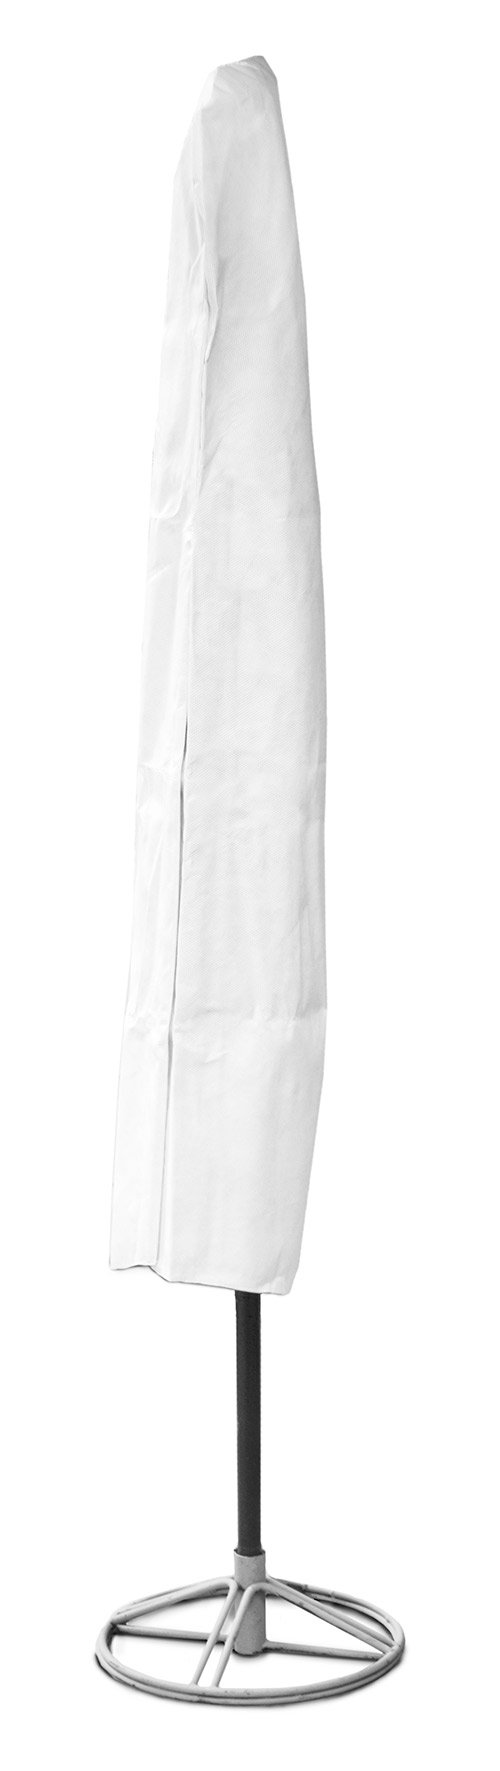 KoverRoos SupraRoos 54150 7-Feet to 9-Feet Umbrella Cover, 76-Inch Height by 48-Inch Circumference, White by KOVERROOS